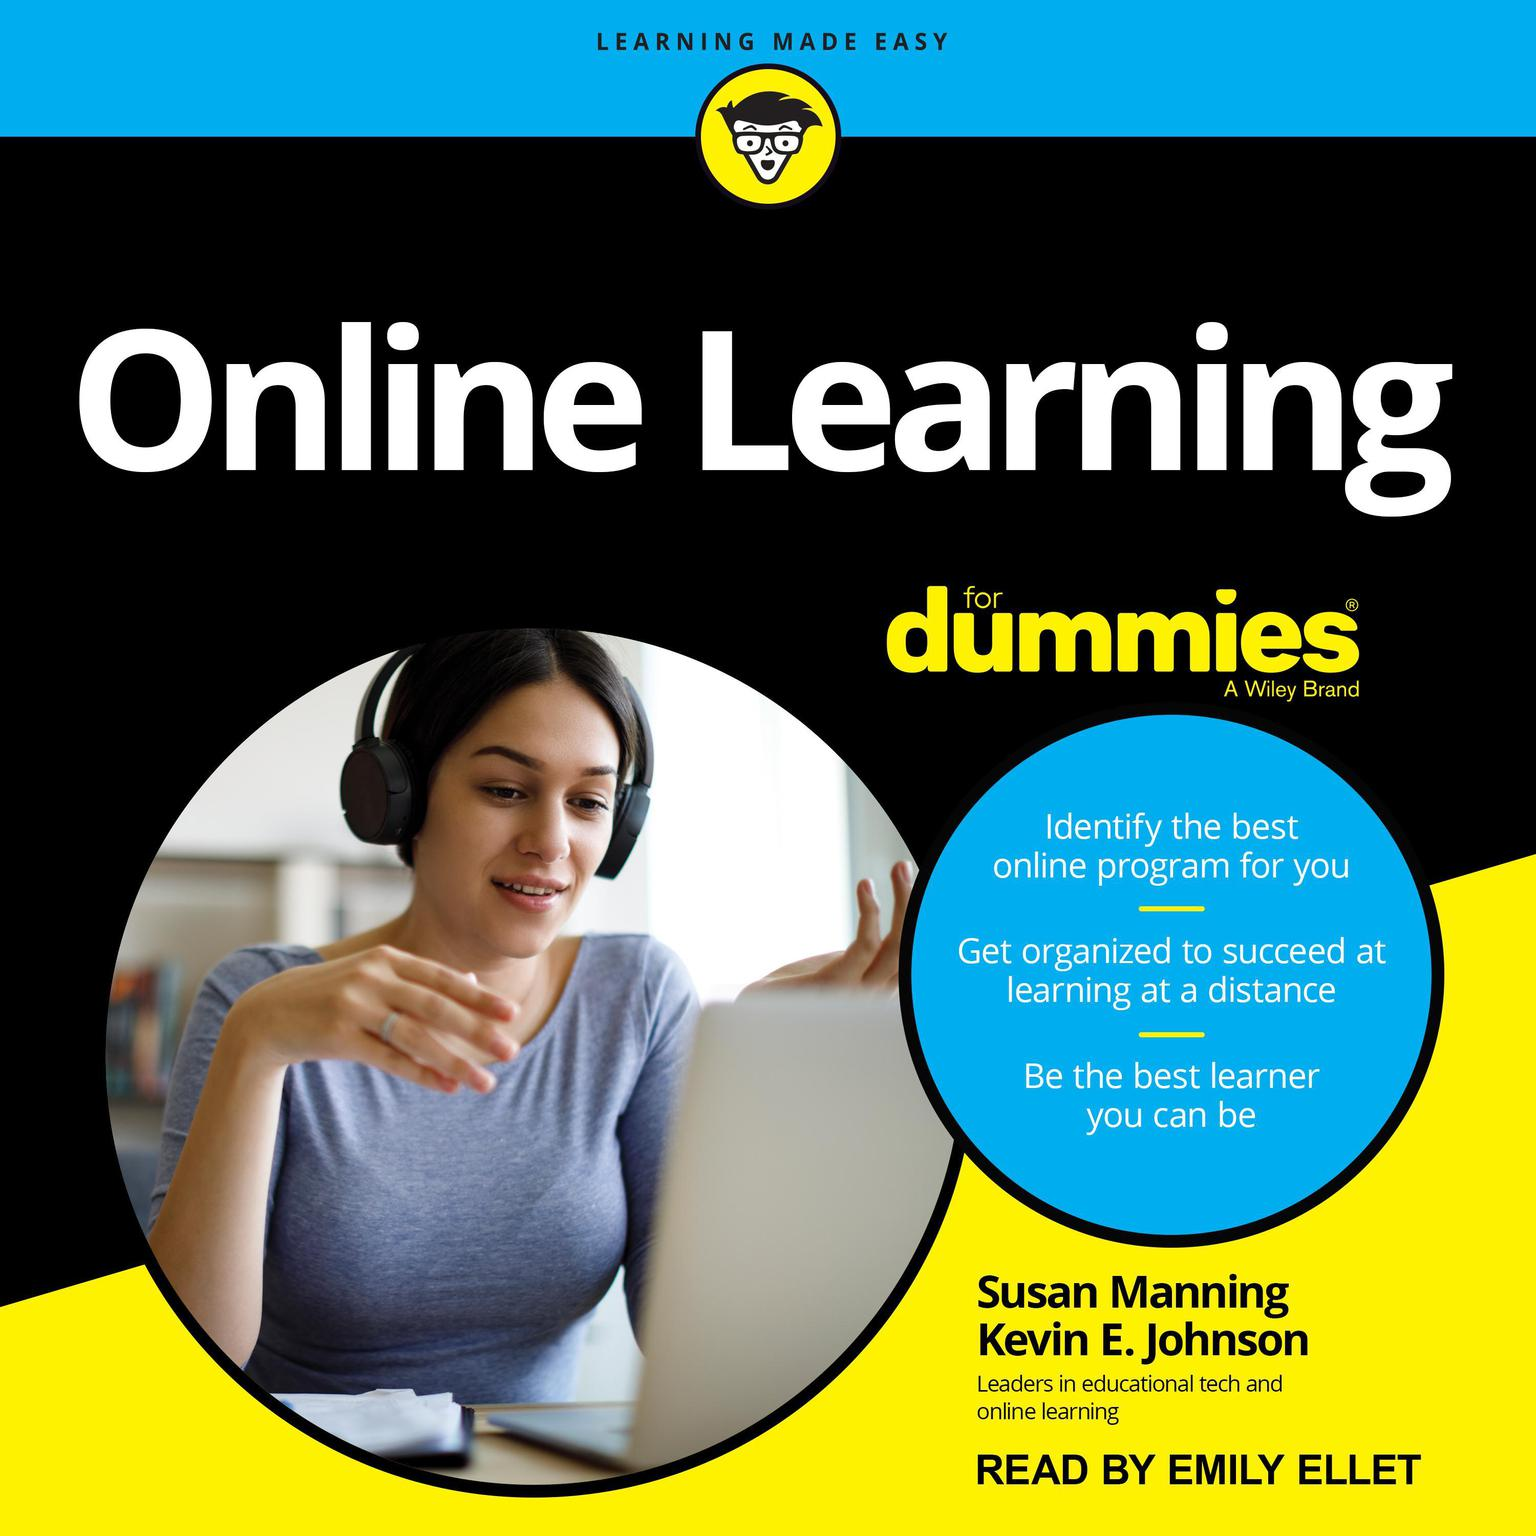 Online Learning For Dummies Audiobook, by Kevin E. Johnson